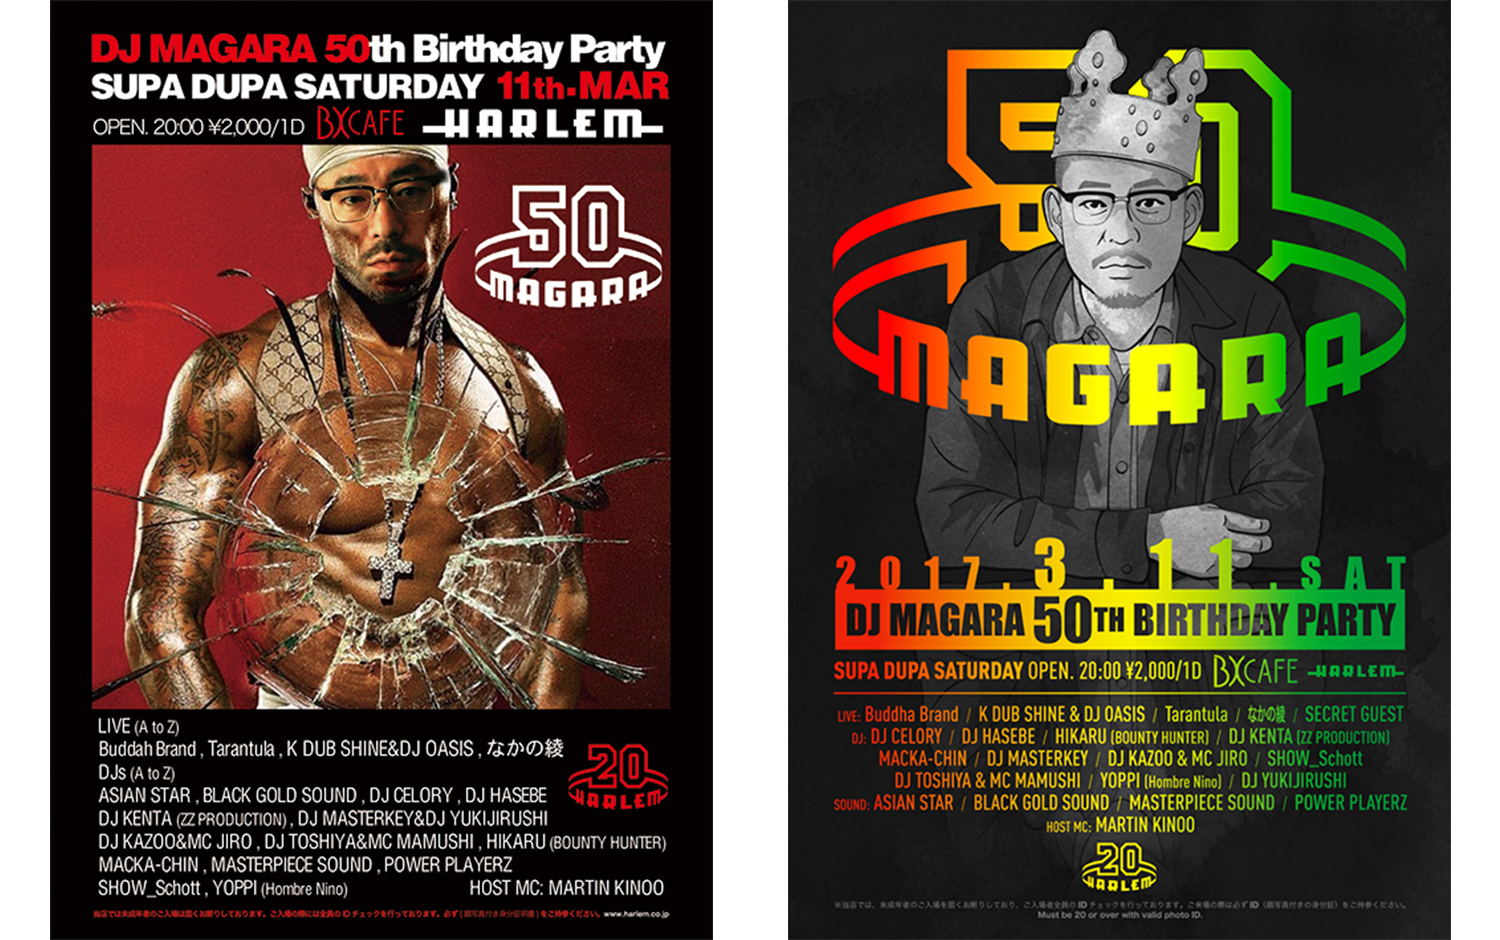 dj-magara-50th-bdp-2